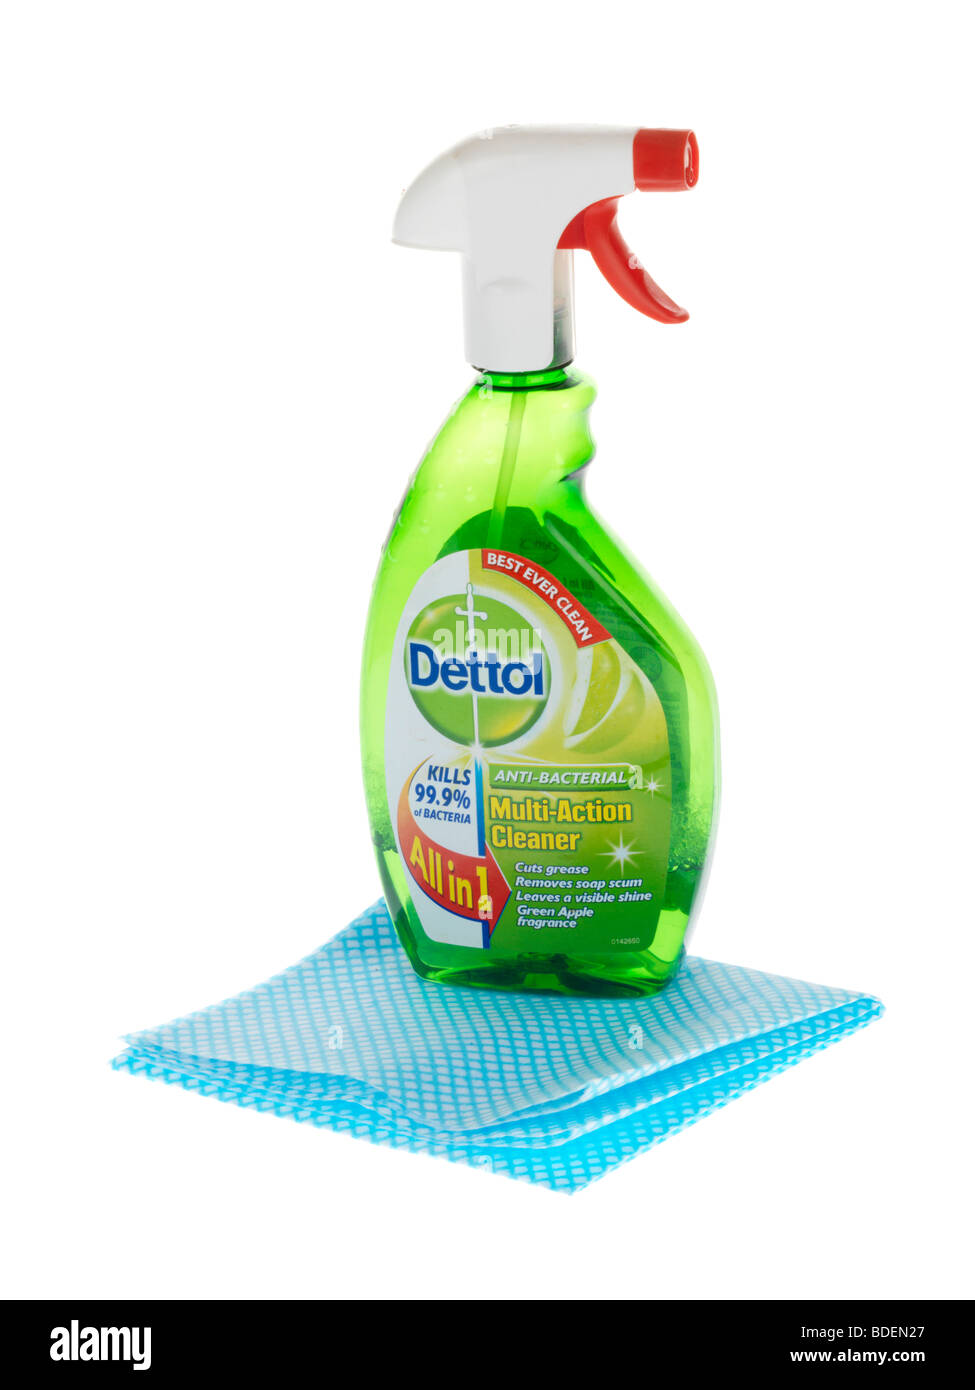 Anti Bacterial Cleaner Stock Photos Cussons Baby Liquid Detergent 750ml Surface Image